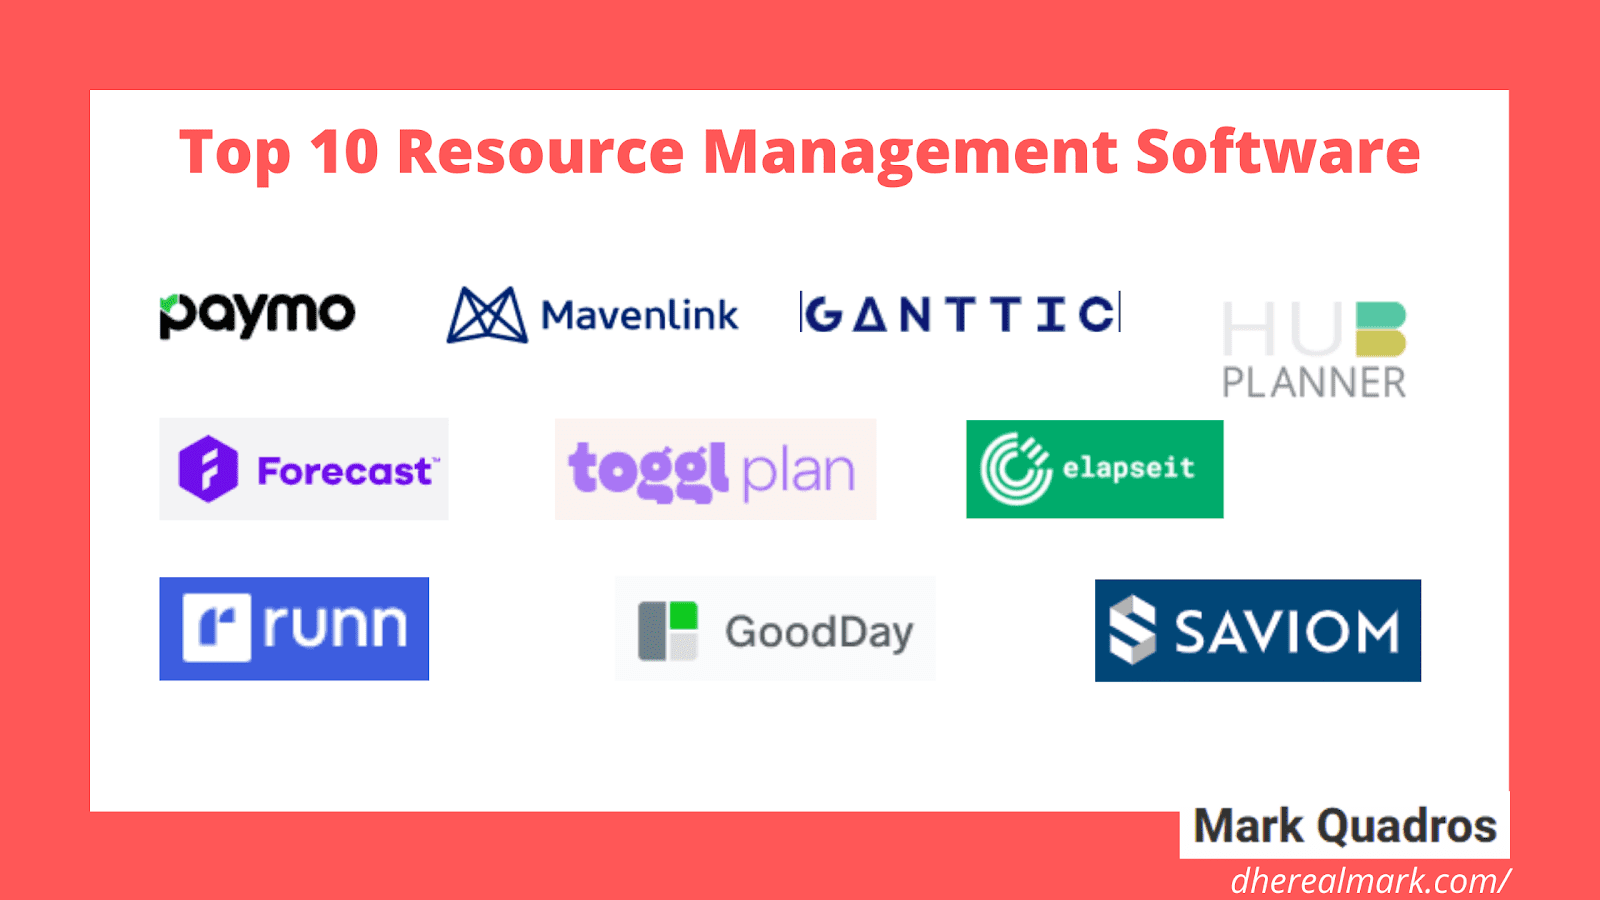 Top 10 Resource Management Software